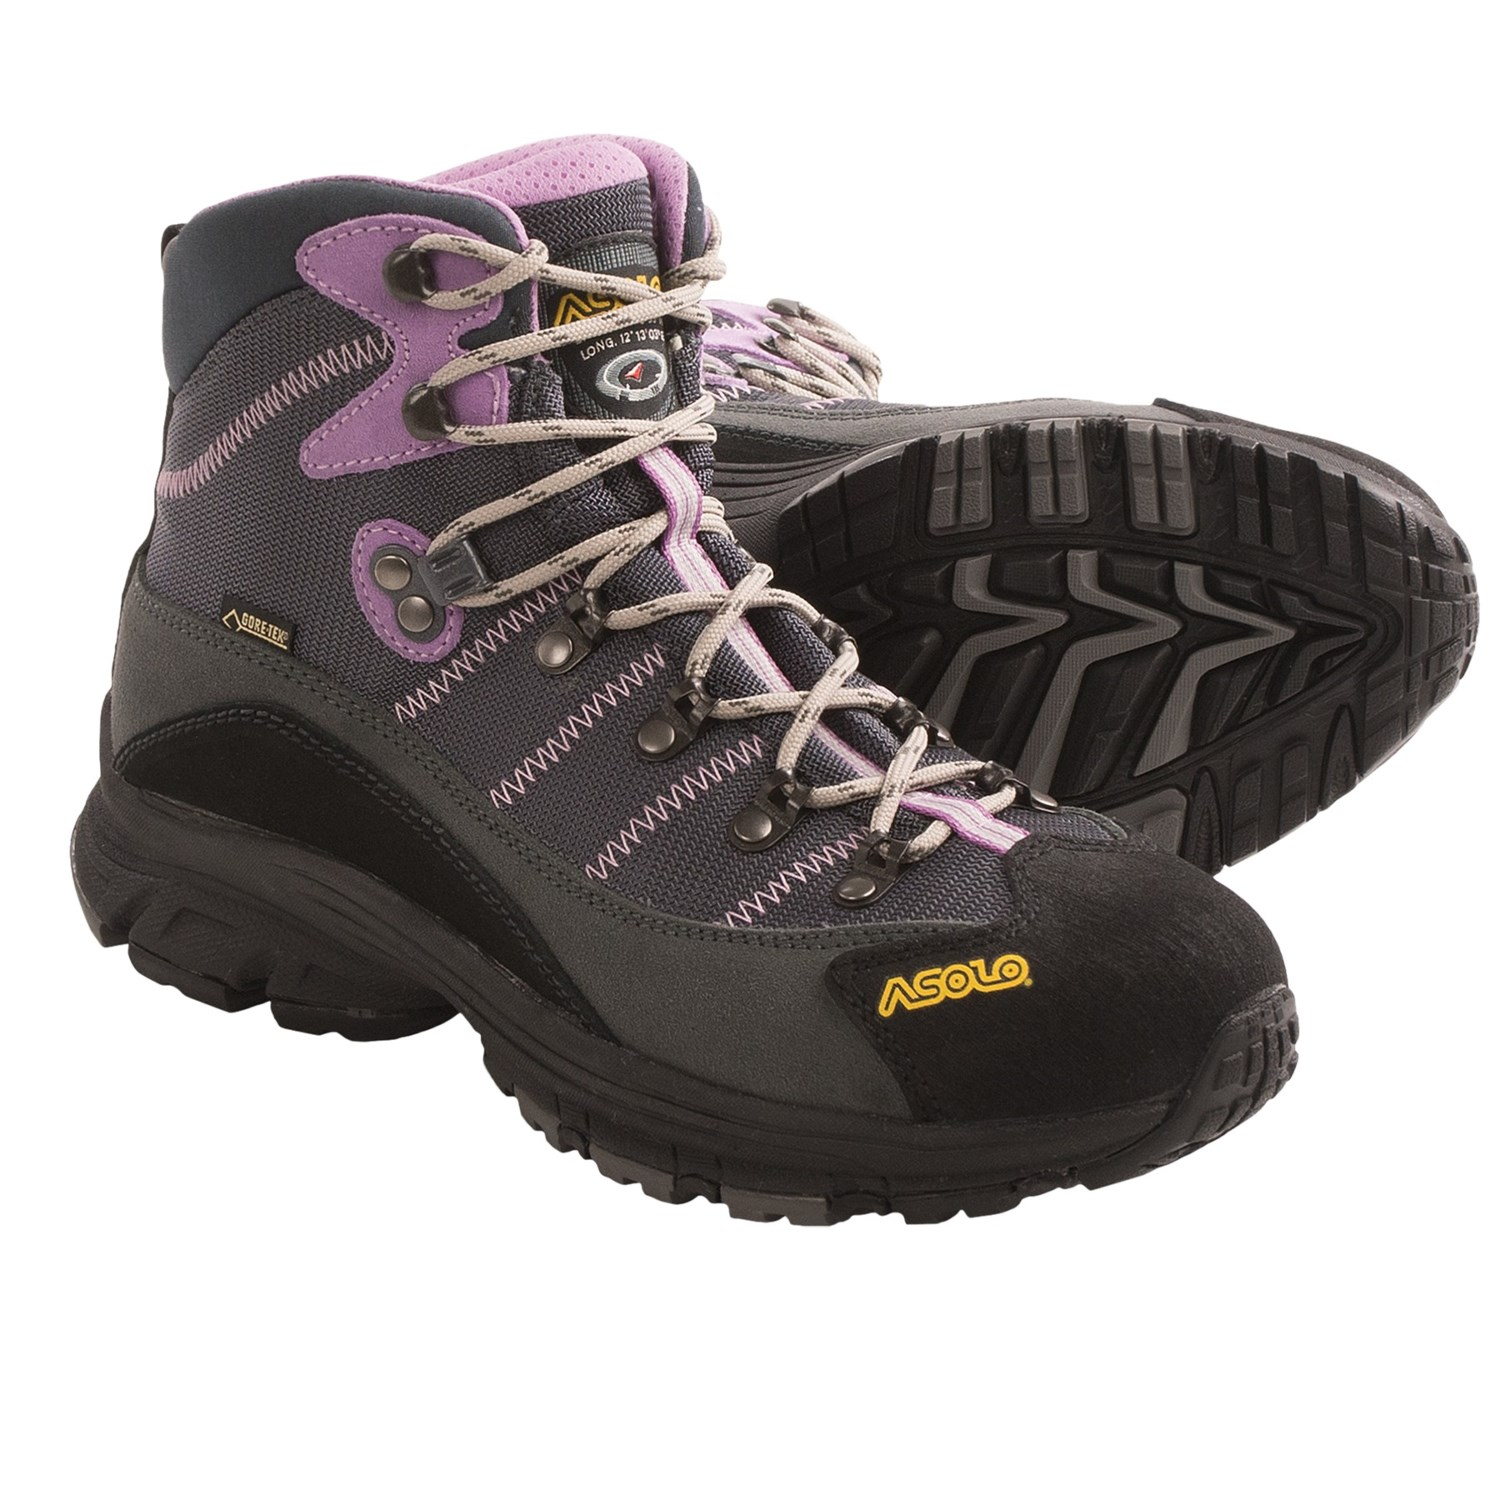 Asolo Horizon 1 Gore Tex 174 Hiking Boots For Women Save 45